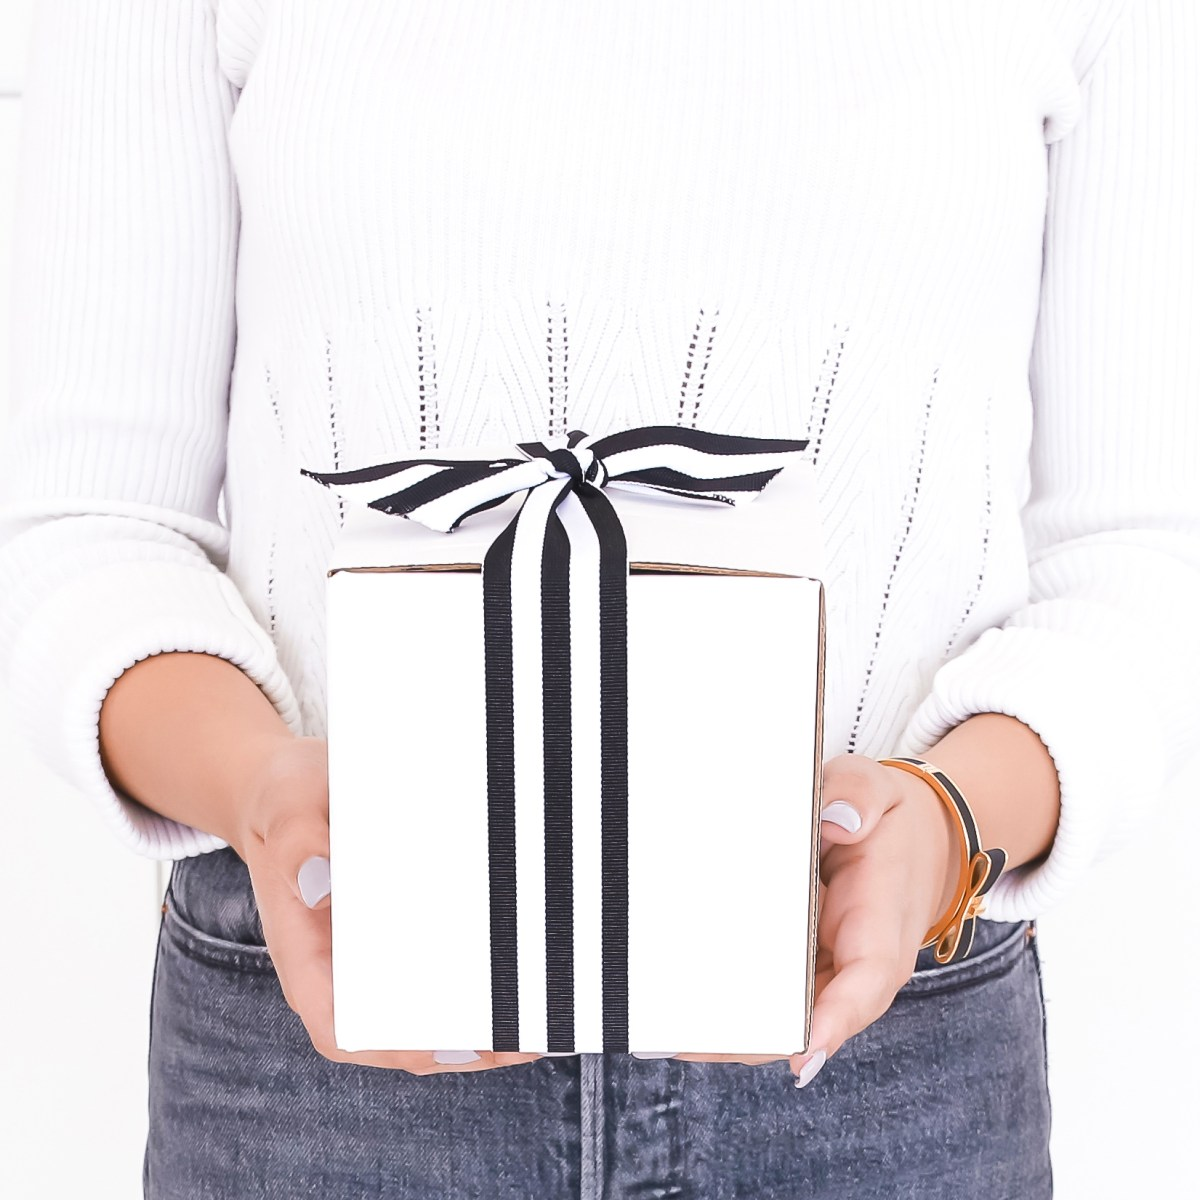 Need a Gift for a New Mom? These Items are Perfect